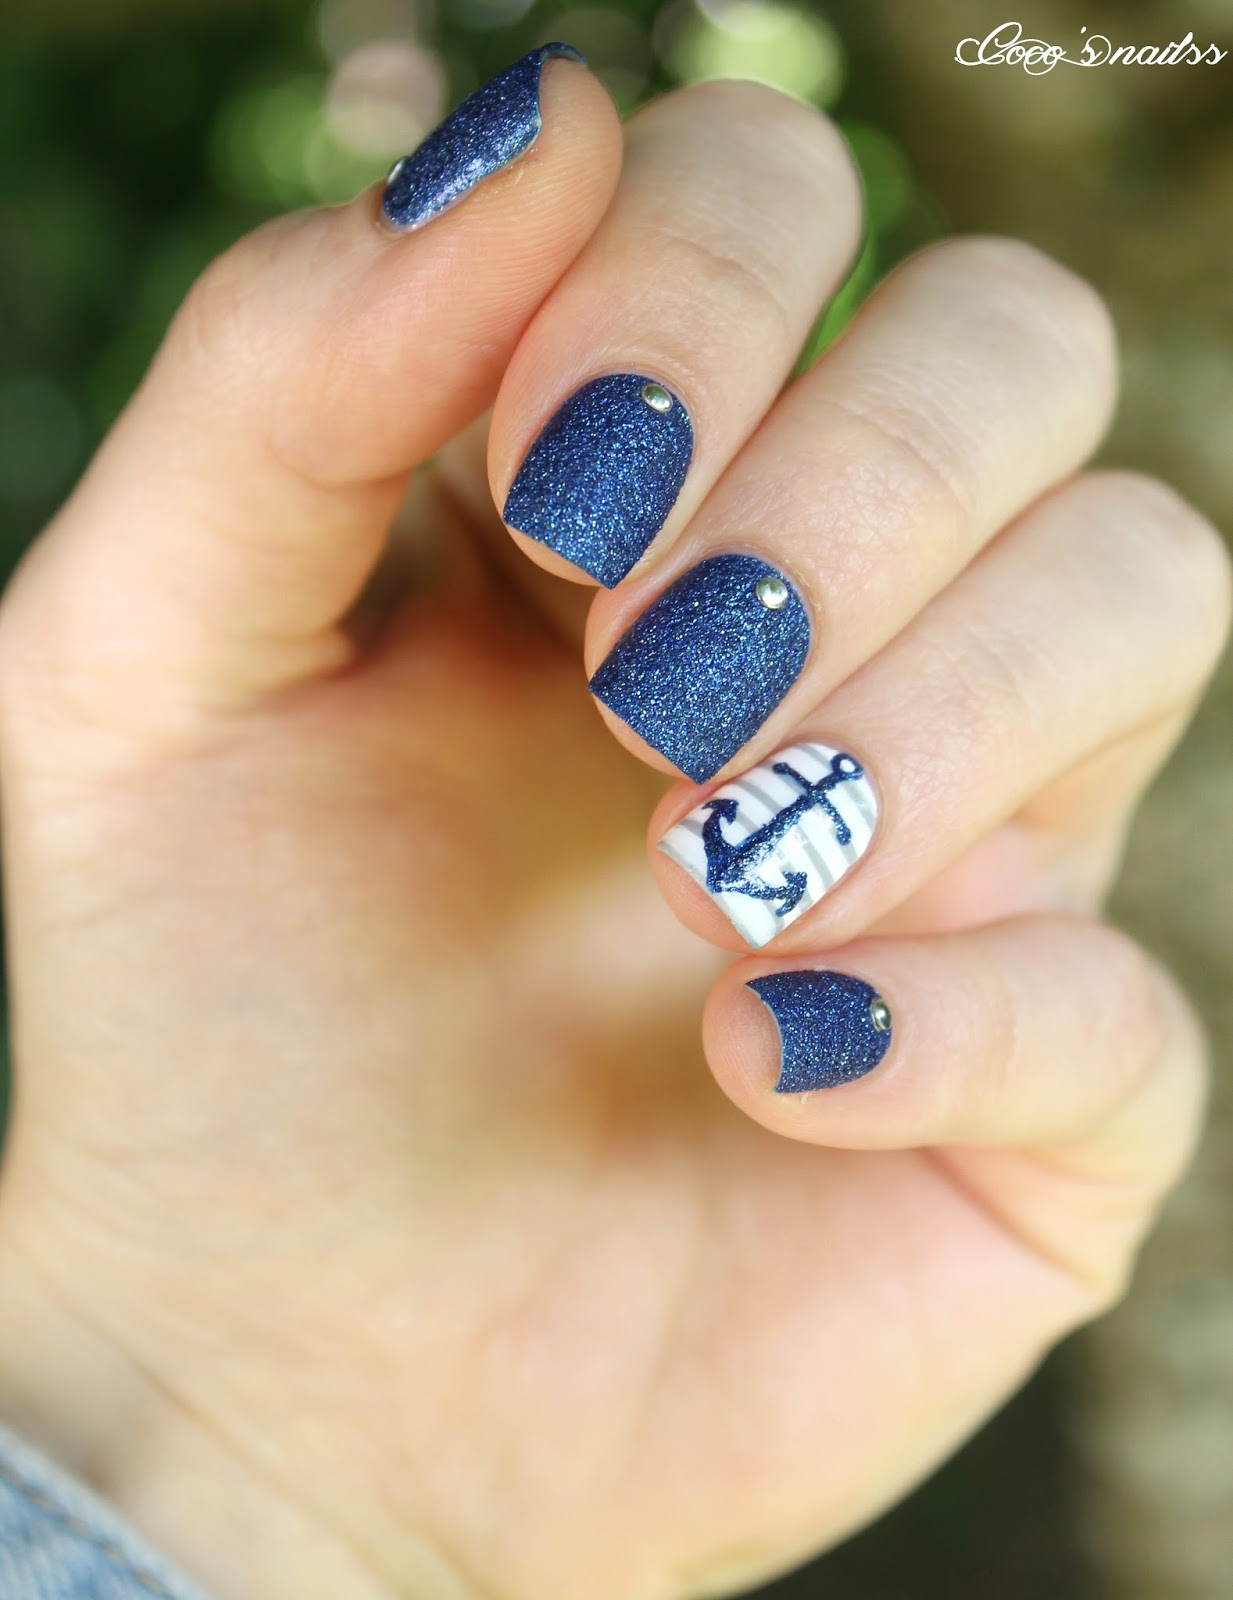 Nautical nail designs gallery nail art and nail design ideas stunning diy summer nail tutorials nautical nail design prinsesfo gallery prinsesfo Gallery